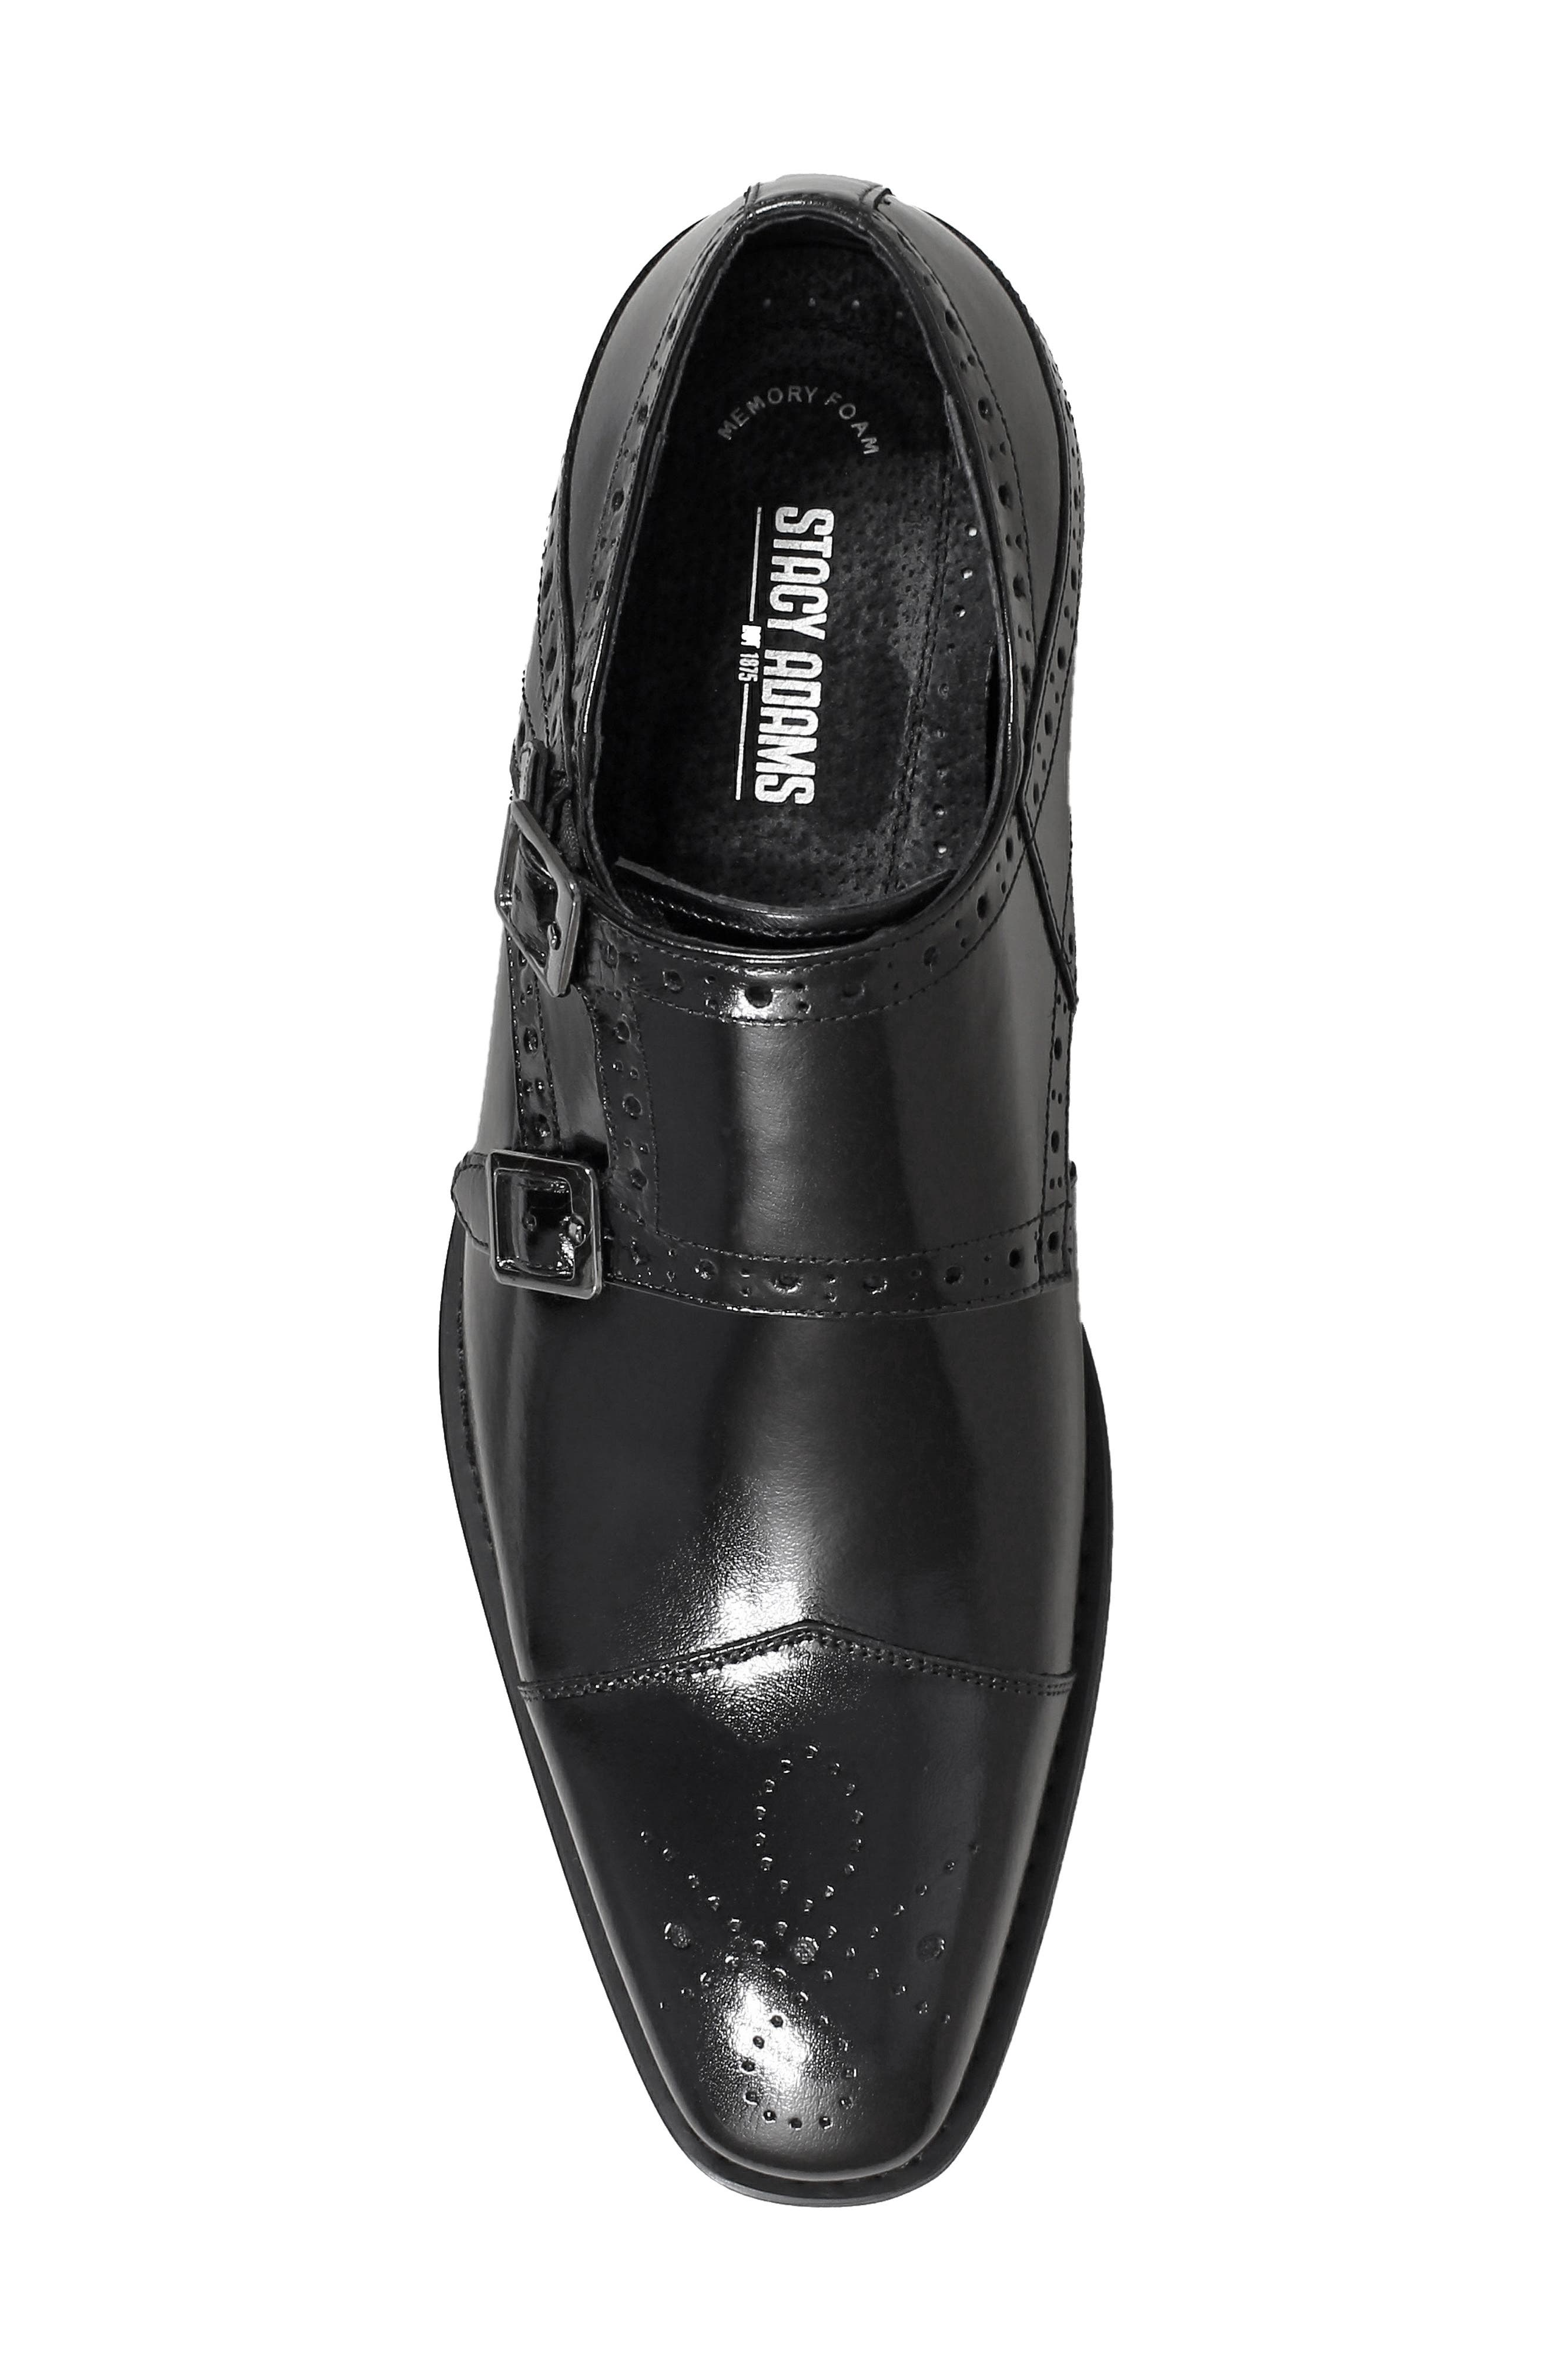 STACY ADAMS, Tayton Cap Toe Double Strap Monk Shoe, Alternate thumbnail 5, color, BLACK LEATHER